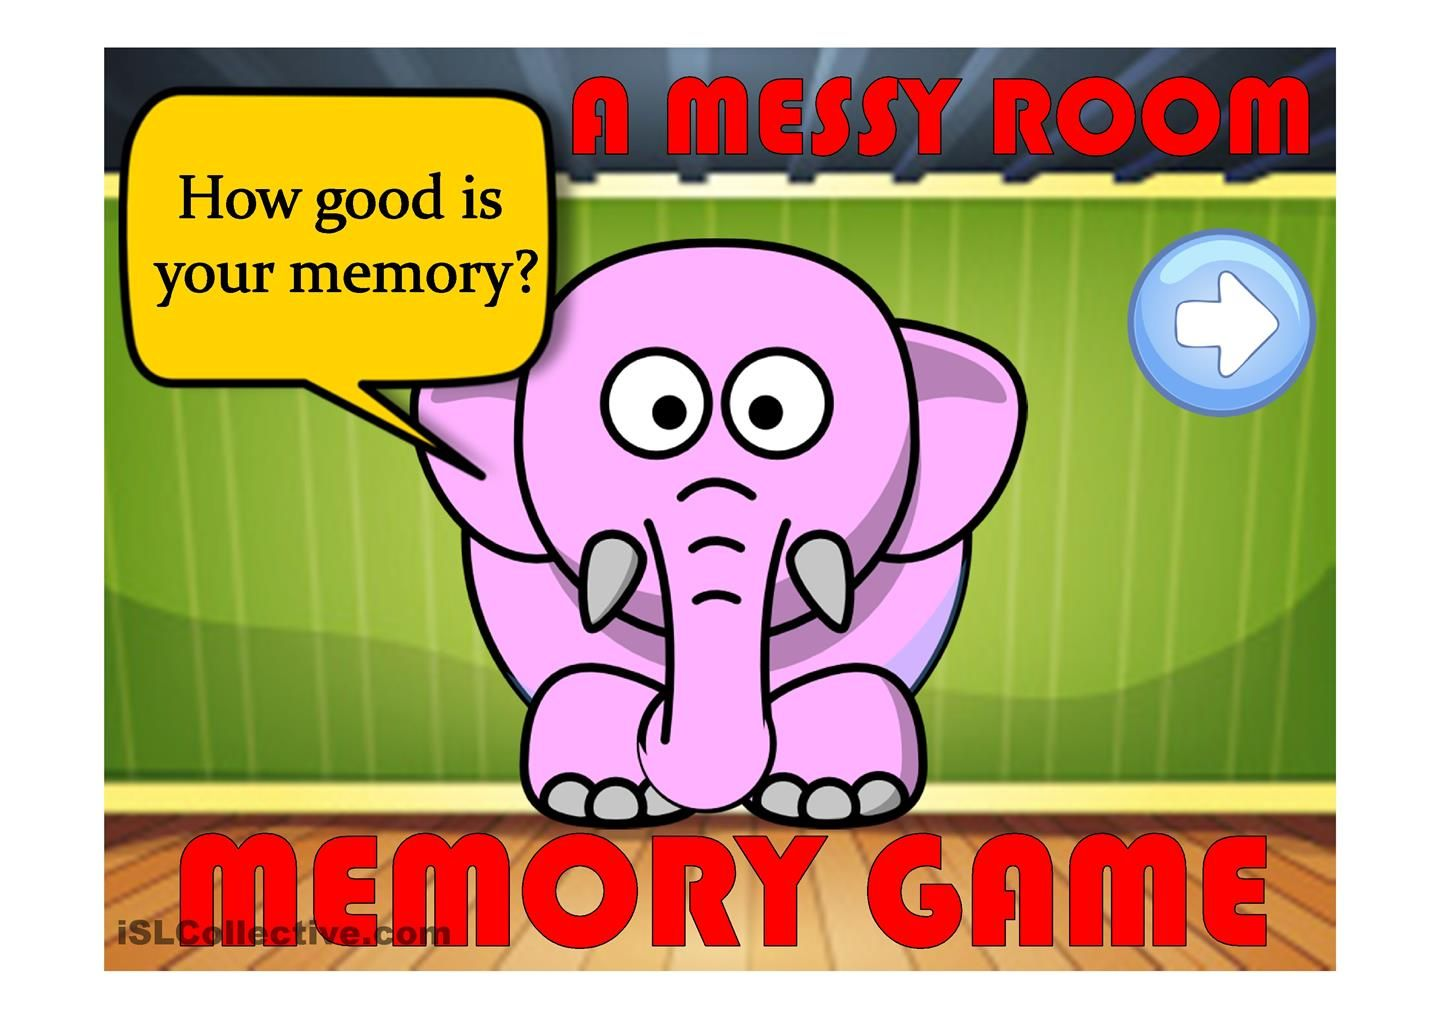 A Messy Room 1 A Memory Game Prepositions Messy Room Memory Games Memories [ 1018 x 1440 Pixel ]